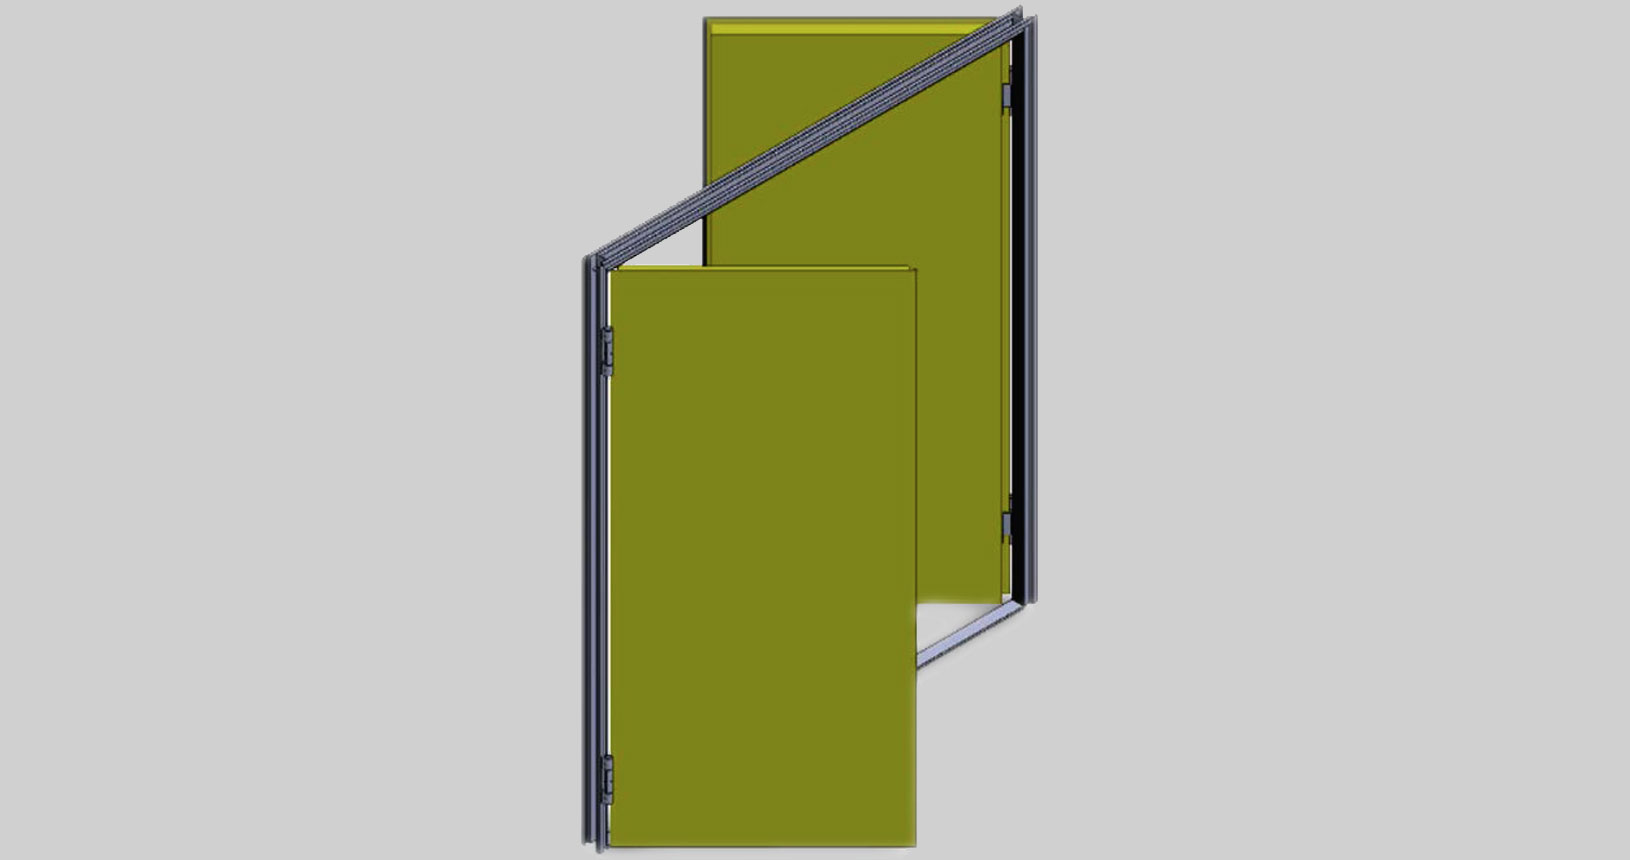 Firestop Tow-way doors